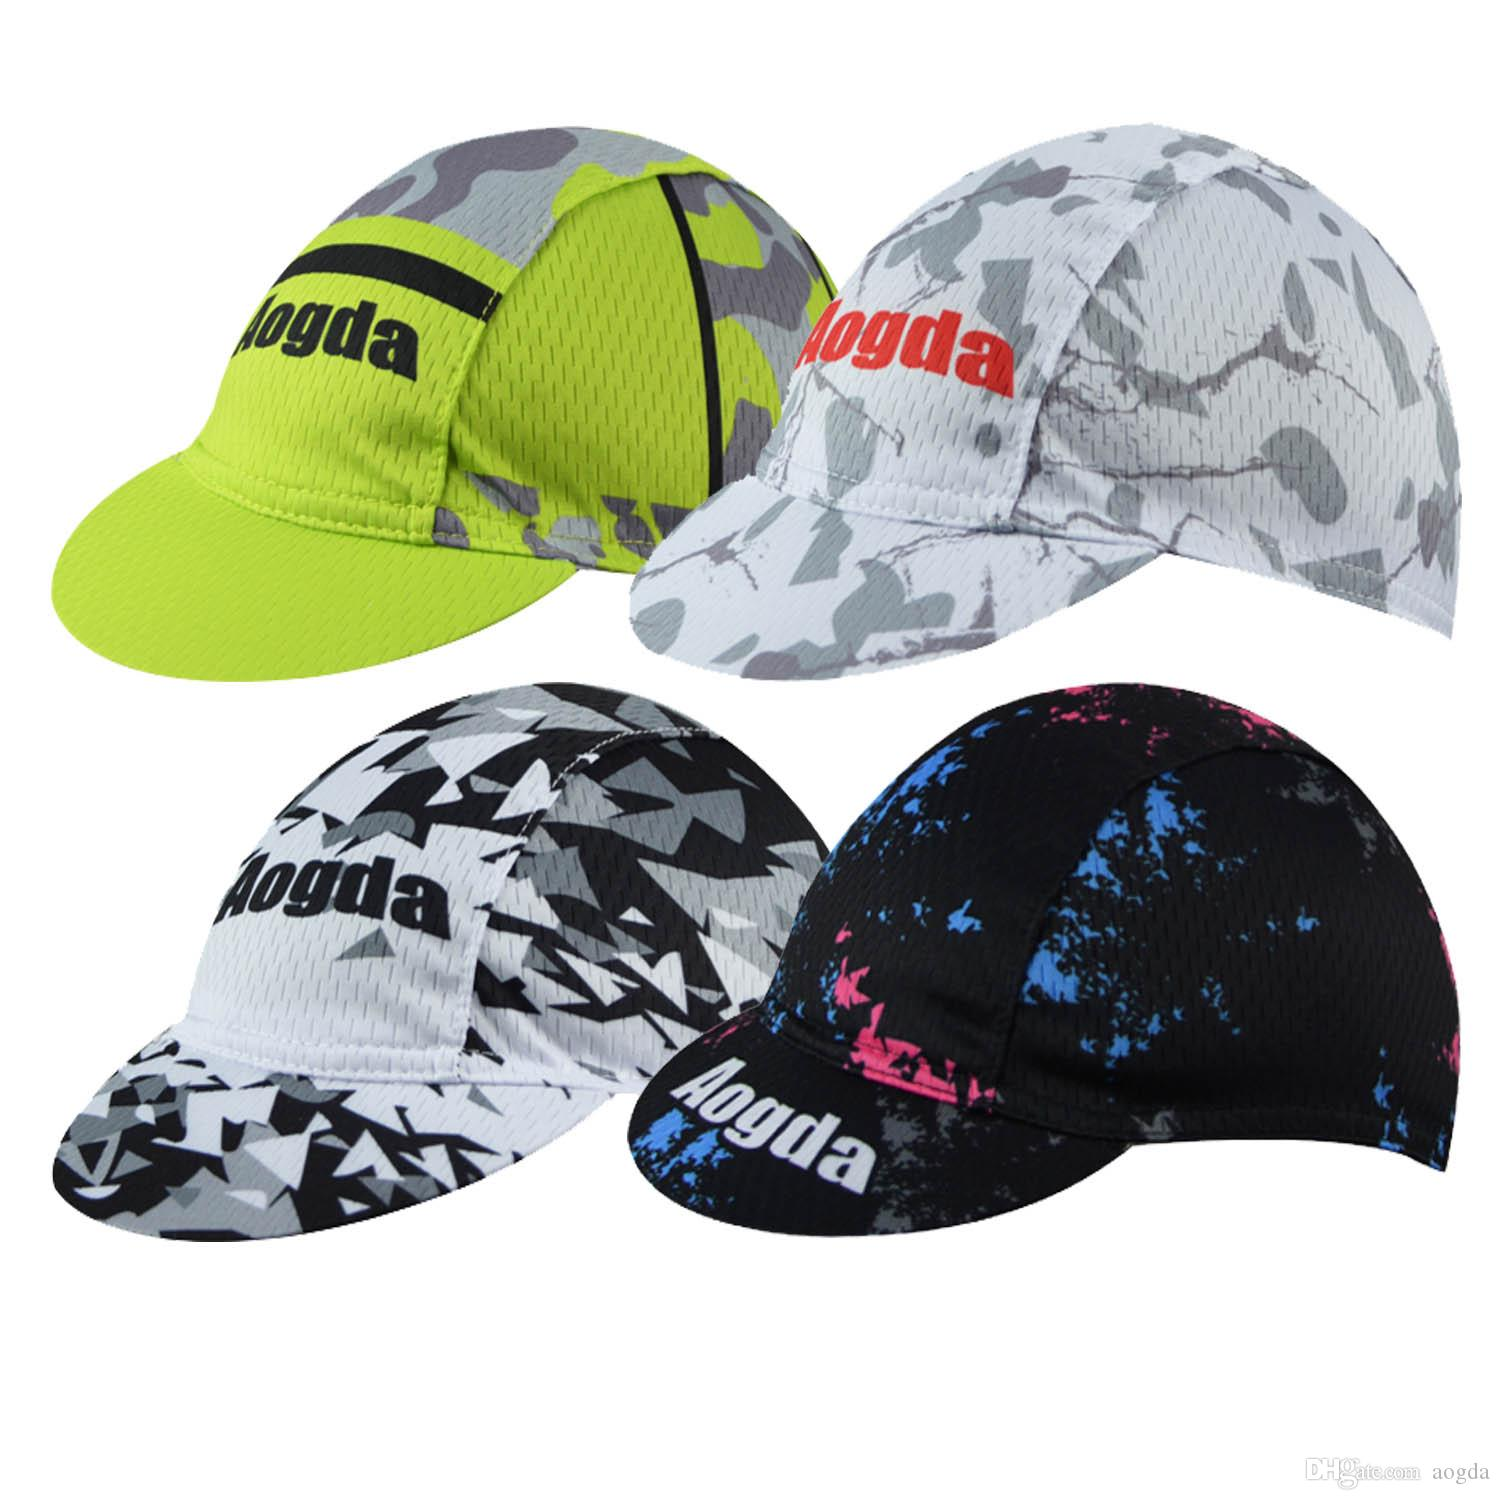 2018 Road Cycling Cap Bike Riding Hat Bicycle For Outdoors Sports Cheaper Wearproof Caps From Aogda 634